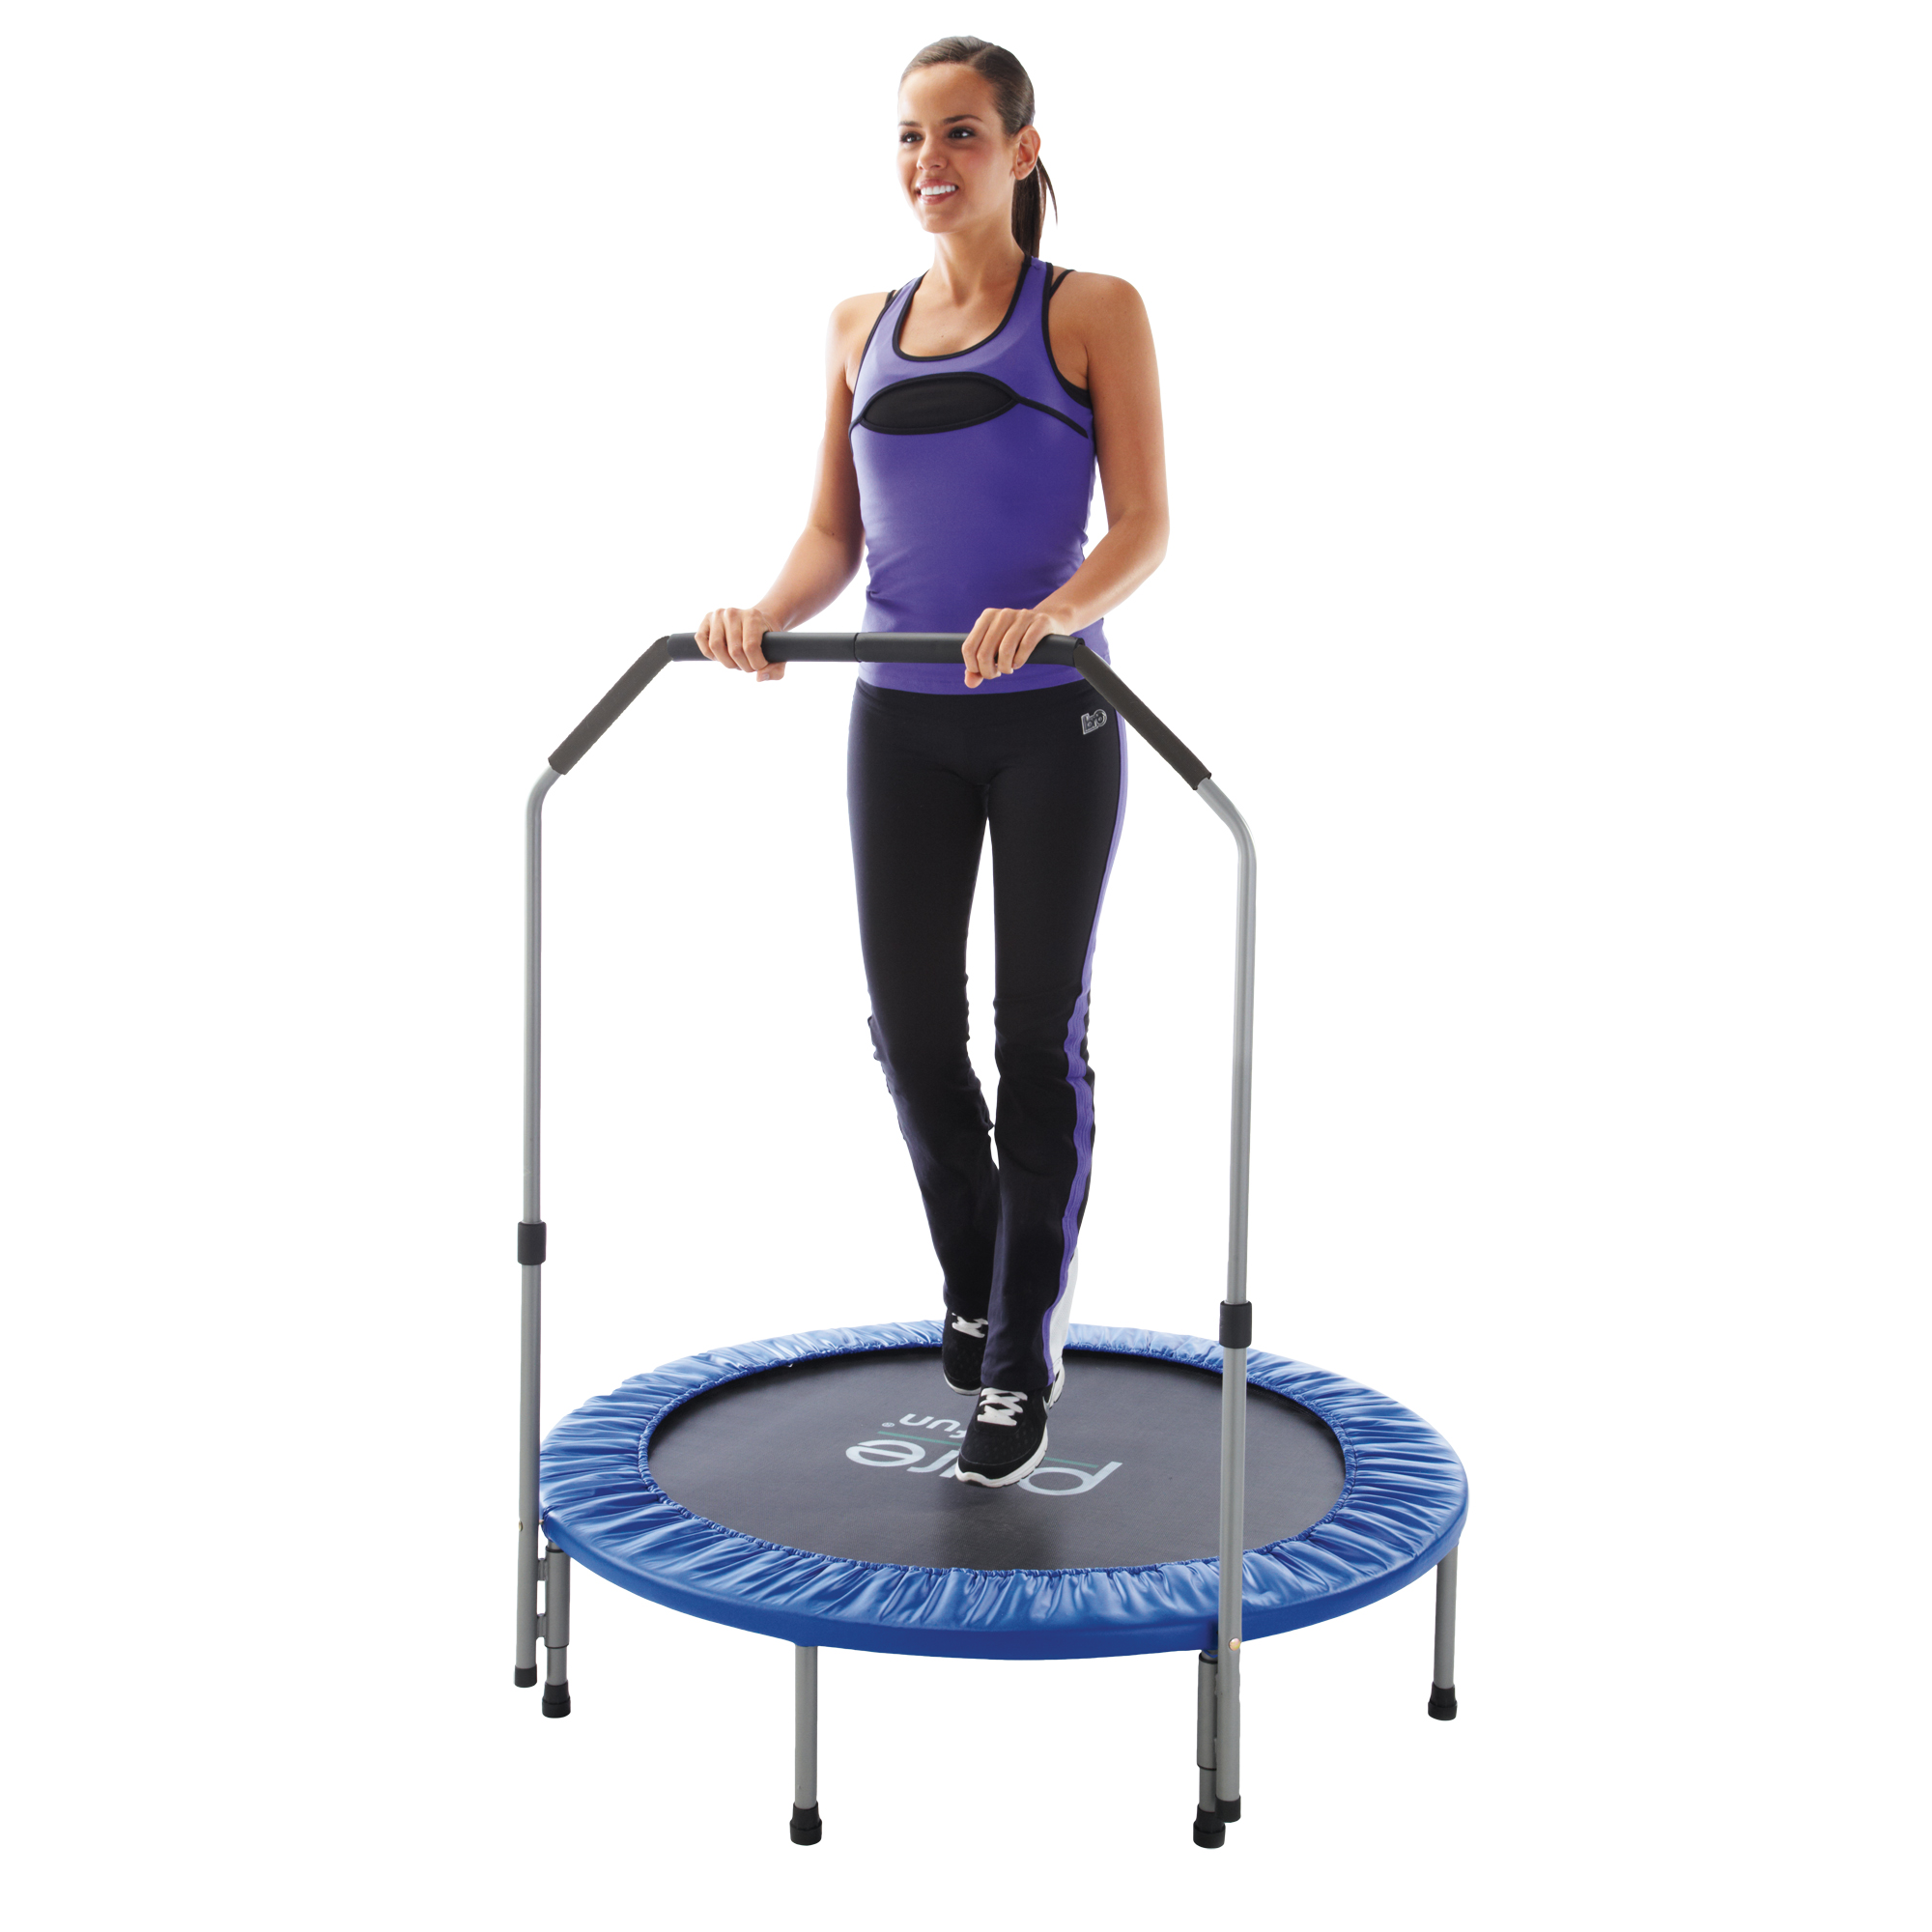 Pure Fun 40-Inch Exercise Trampoline, with Handrail, Blue